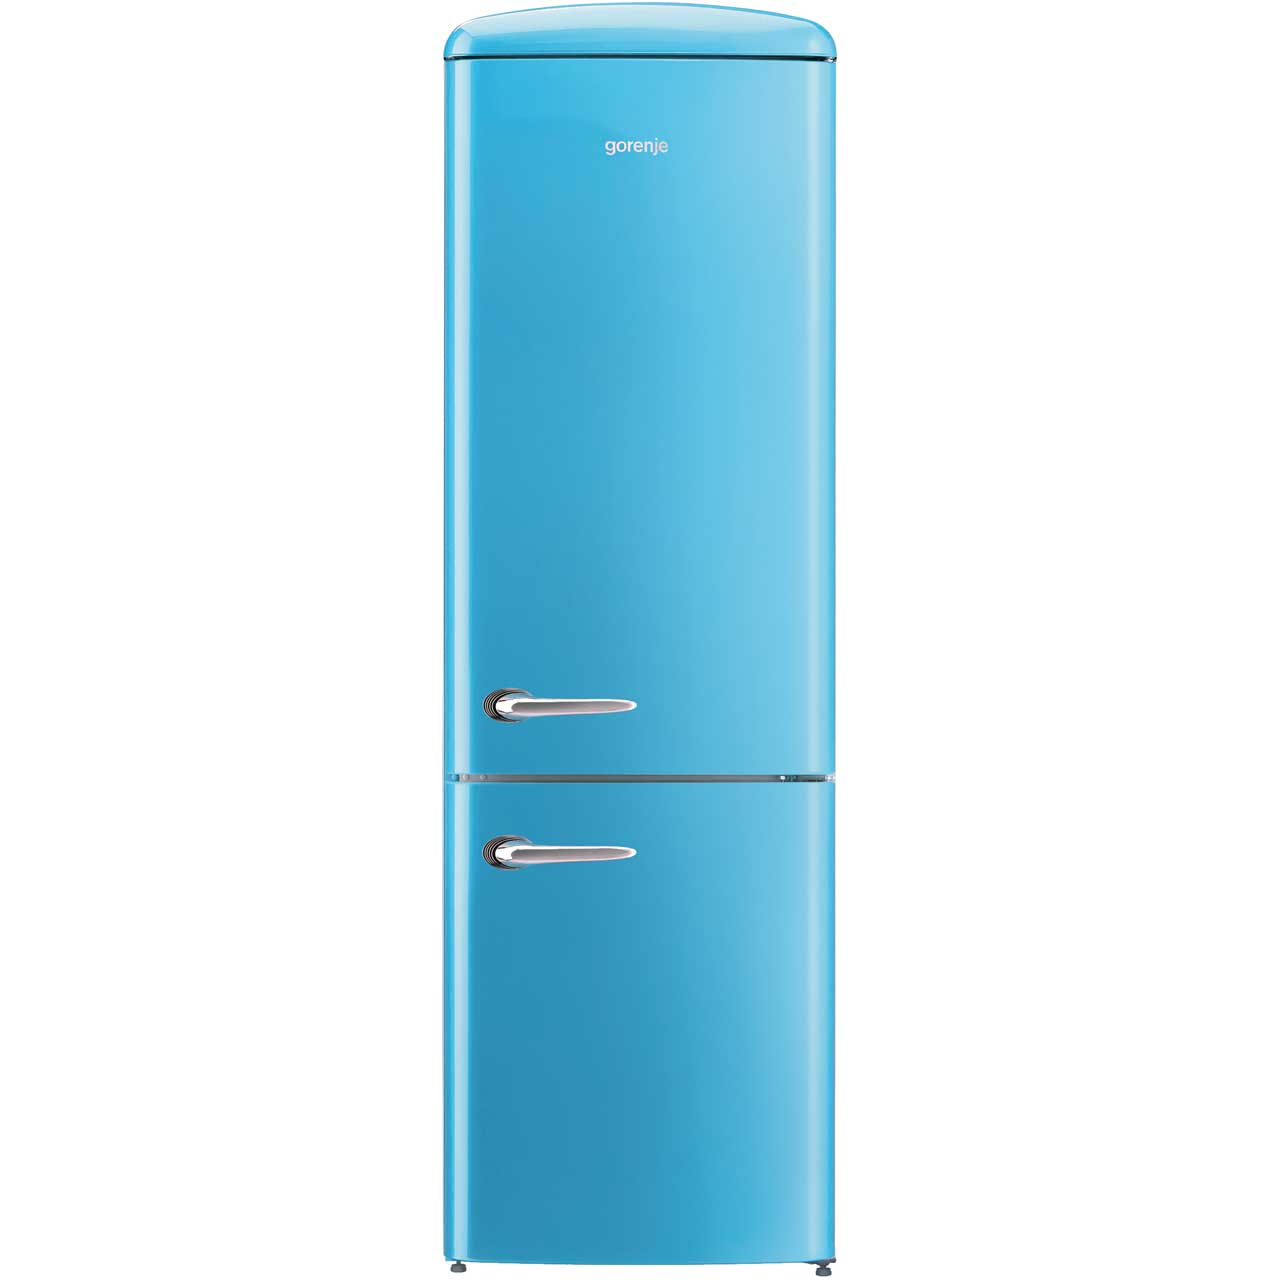 Online Fridge Cheap Retro Fridge Freezer Best Uk Deals On Fridge